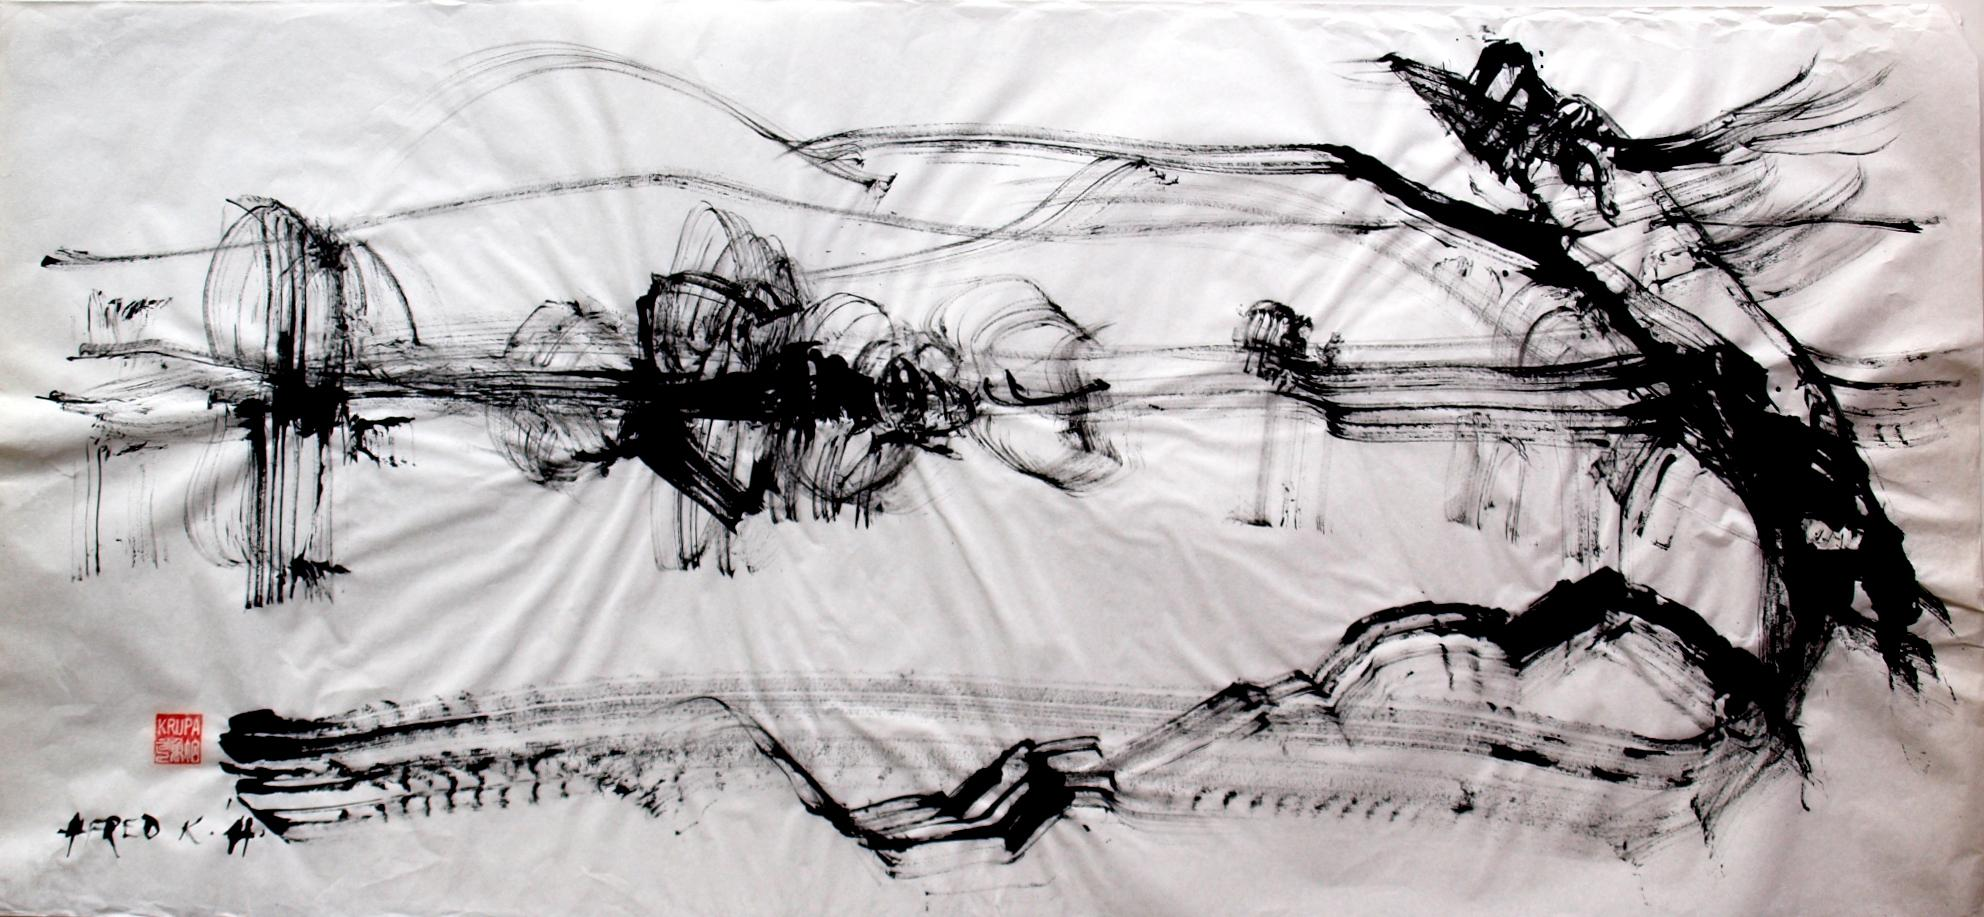 At the River Bank, Contemporary Abstract Ink Painting Paper Expressionist Black